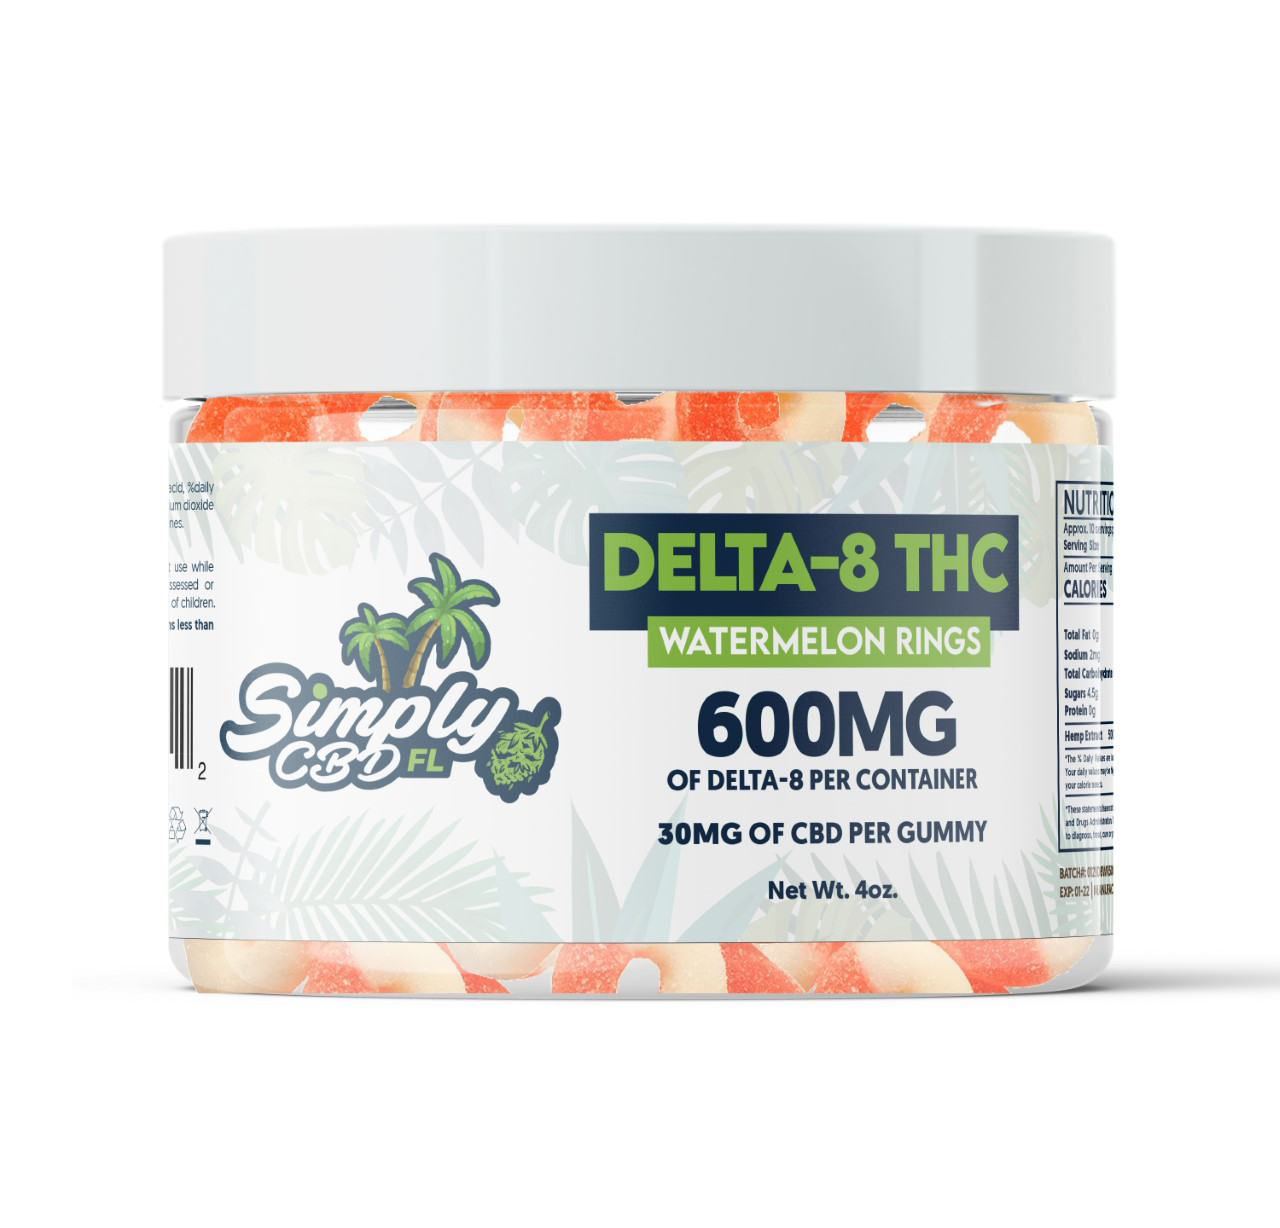 Simply CBD FL 600 MG Delta 8 THC Watermelon Flavored Gummy Rings